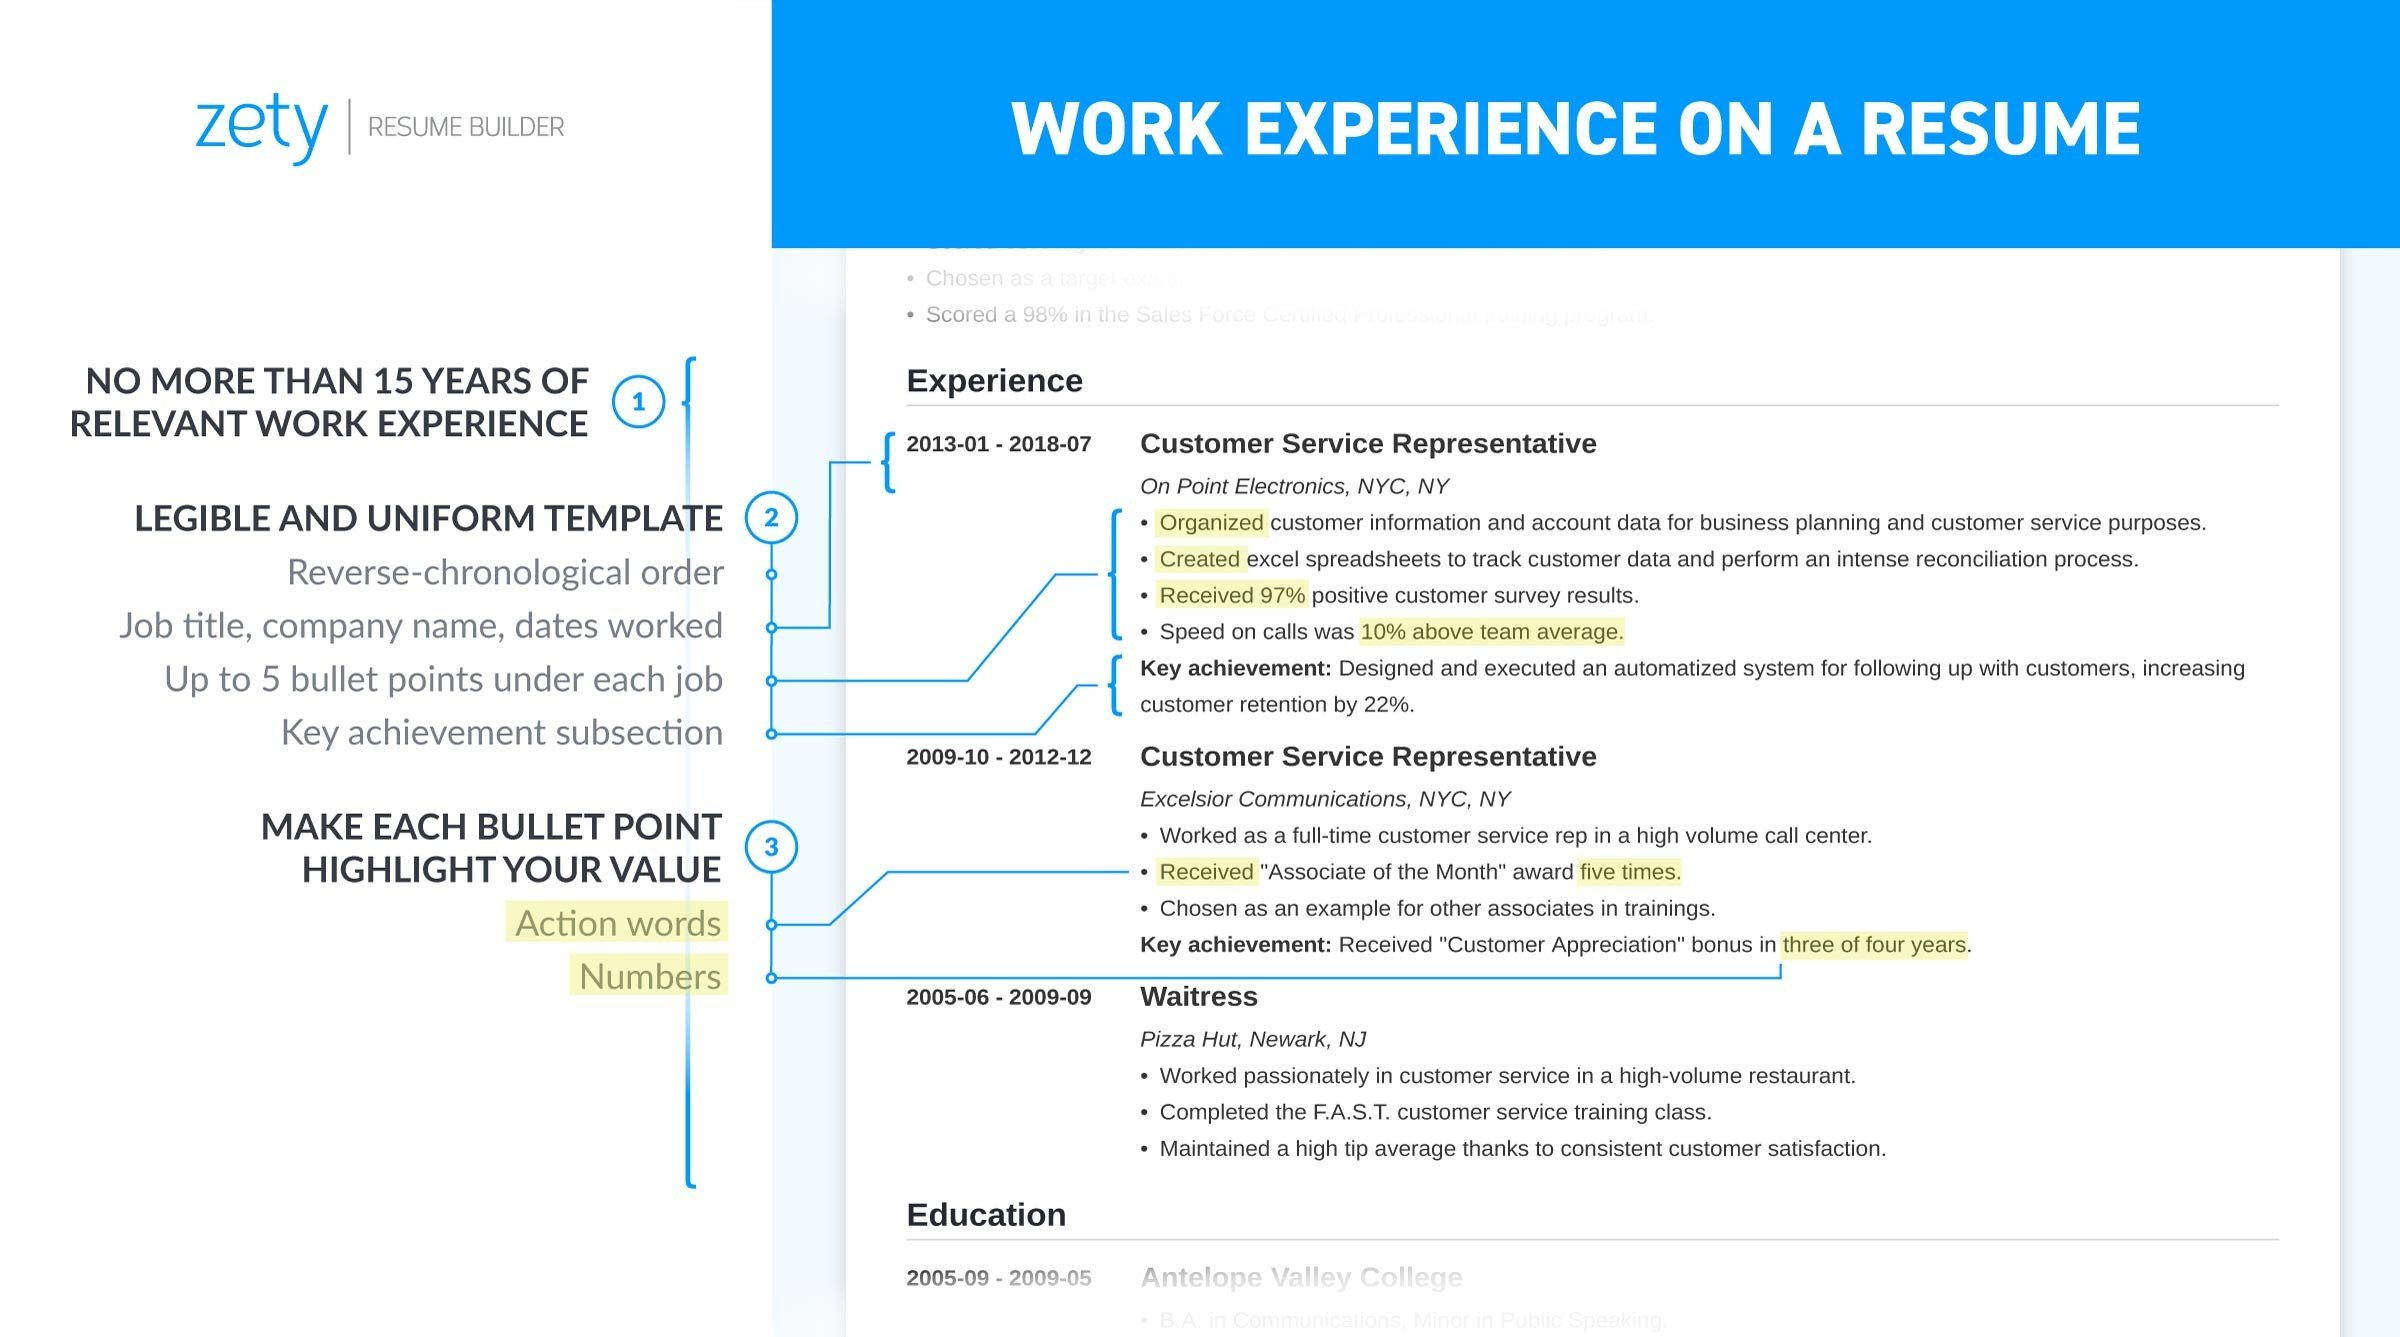 resume work experience history example job descriptions ideas for on all caps Resume Experience Ideas For Resume